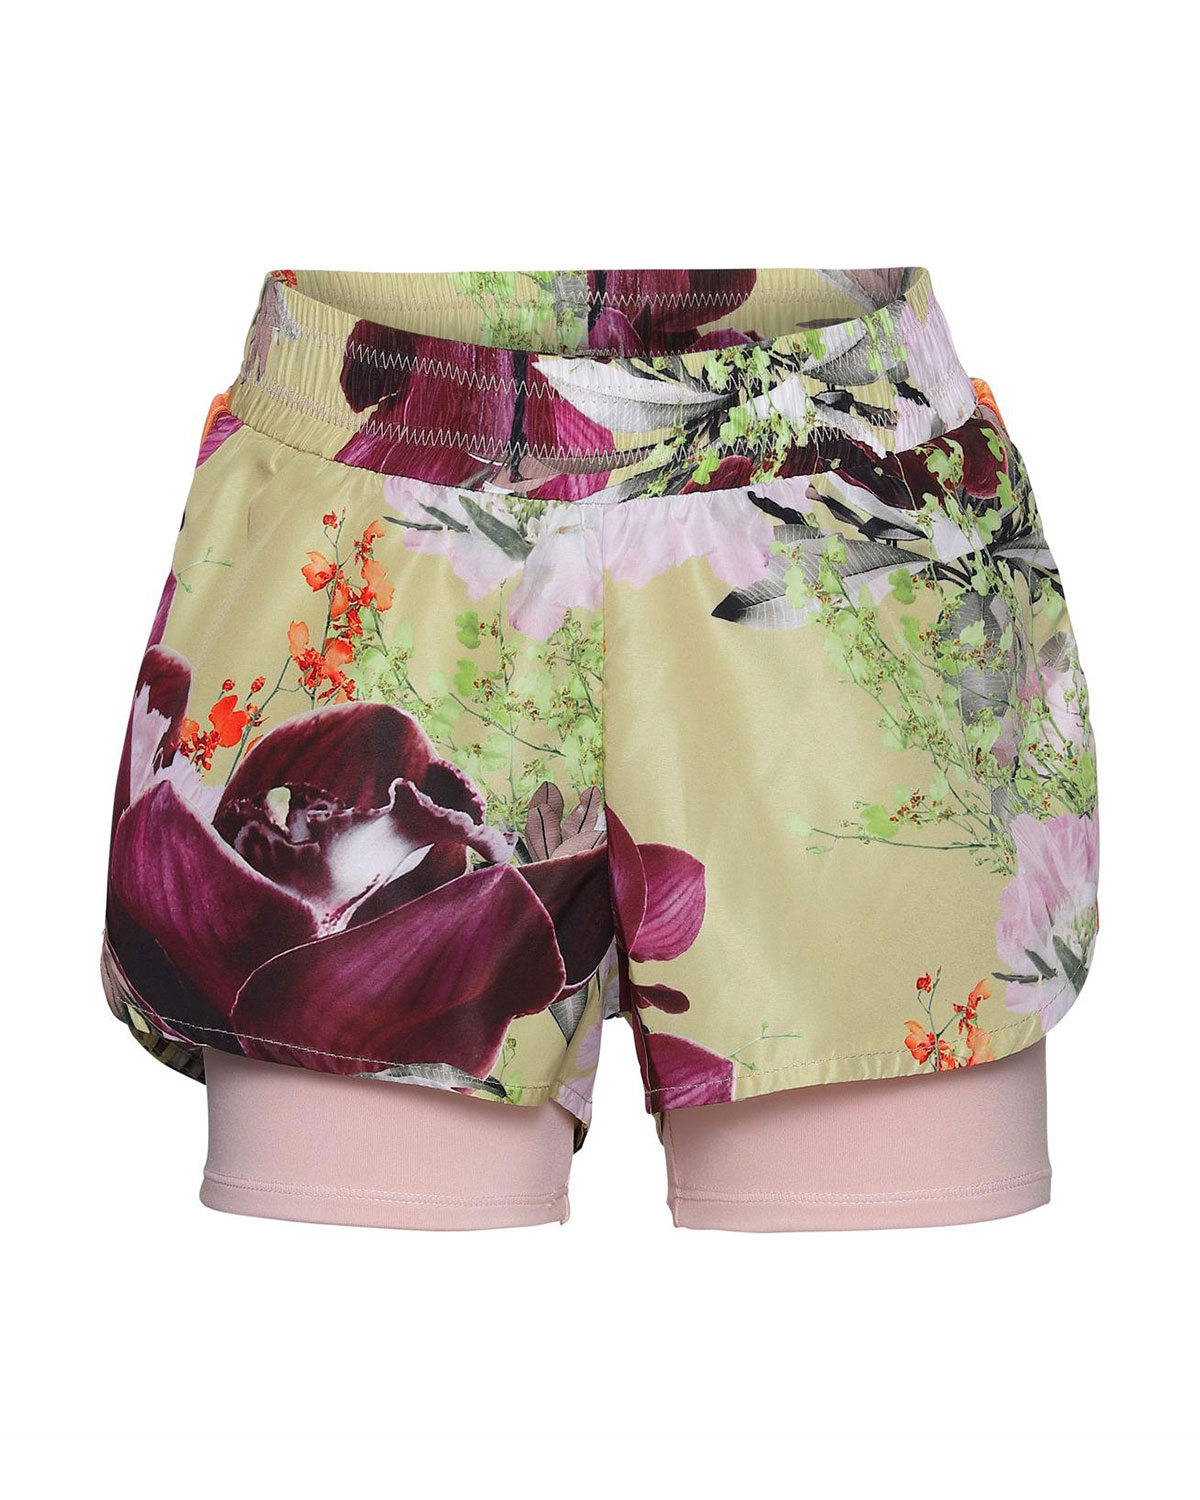 Molo GIRL'S OLYMPIA ORCHID PRINTED HEIQ SHORTS